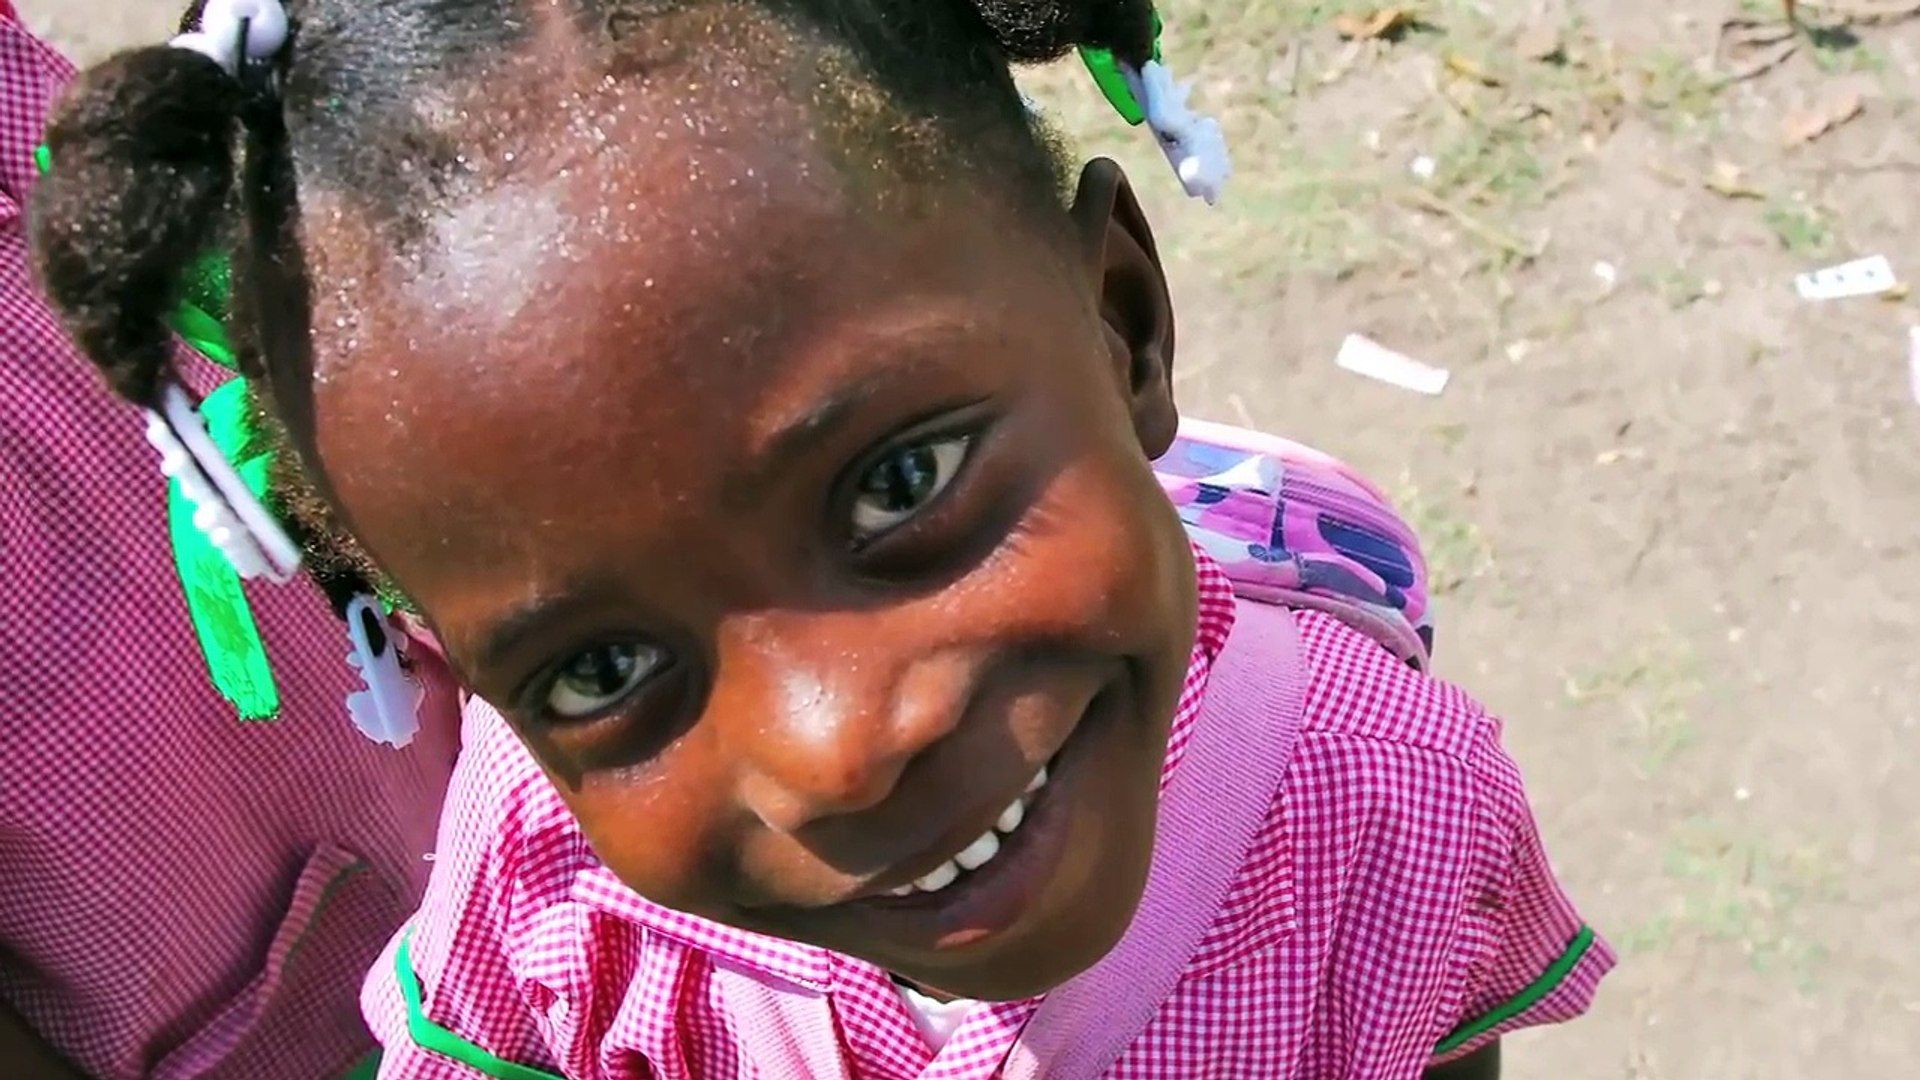 Non Profit Video on Global Impact: Transforming Developing Countries